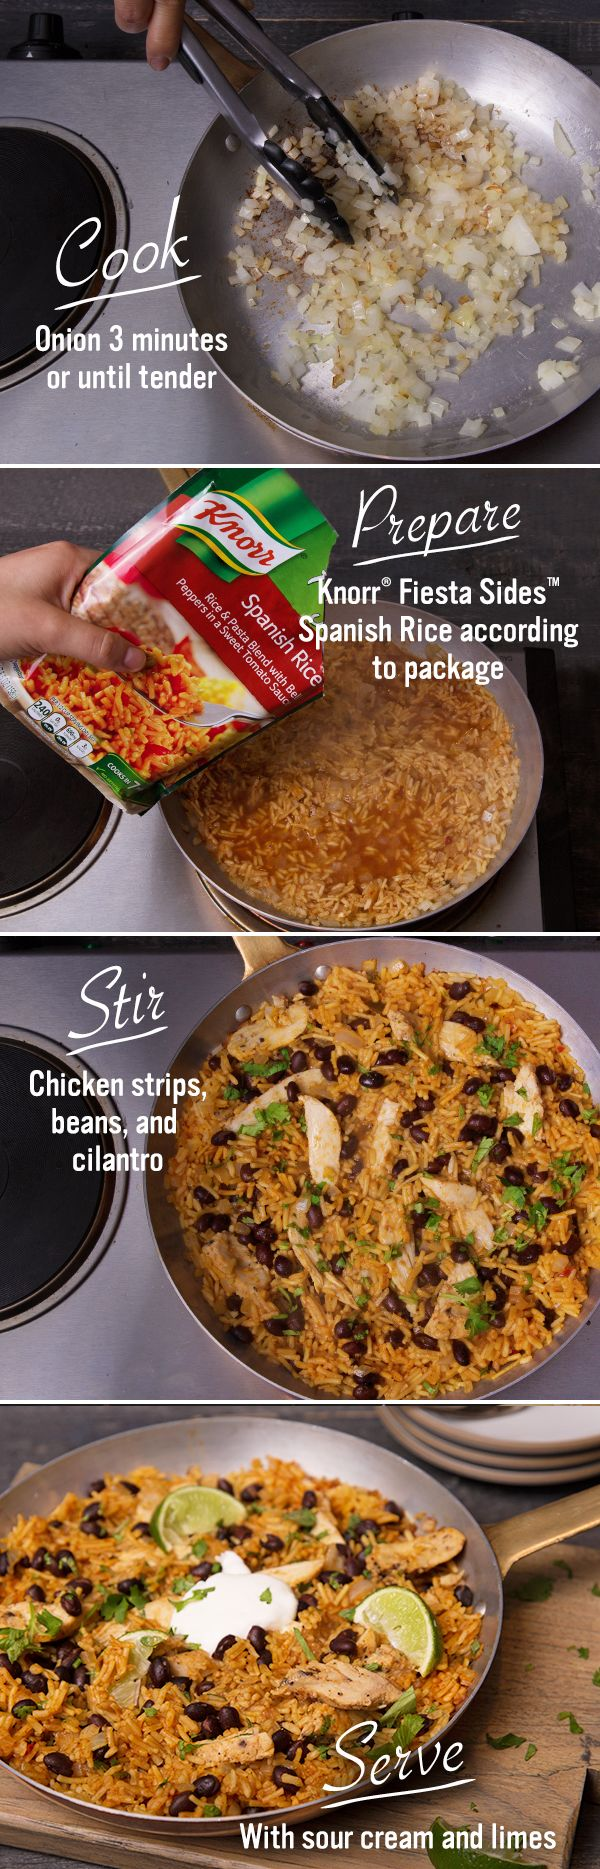 The game may be close, but the MVP (Most Valuable Potluck) dish is obvious. This Skillet Chicken Chili is a guaranteed touchdown: 1. Melt margarine and cook onions. 2. Combine water and Knorr Fiesta Sides - Spanish Rice. 3. Stir in chicken and beans.